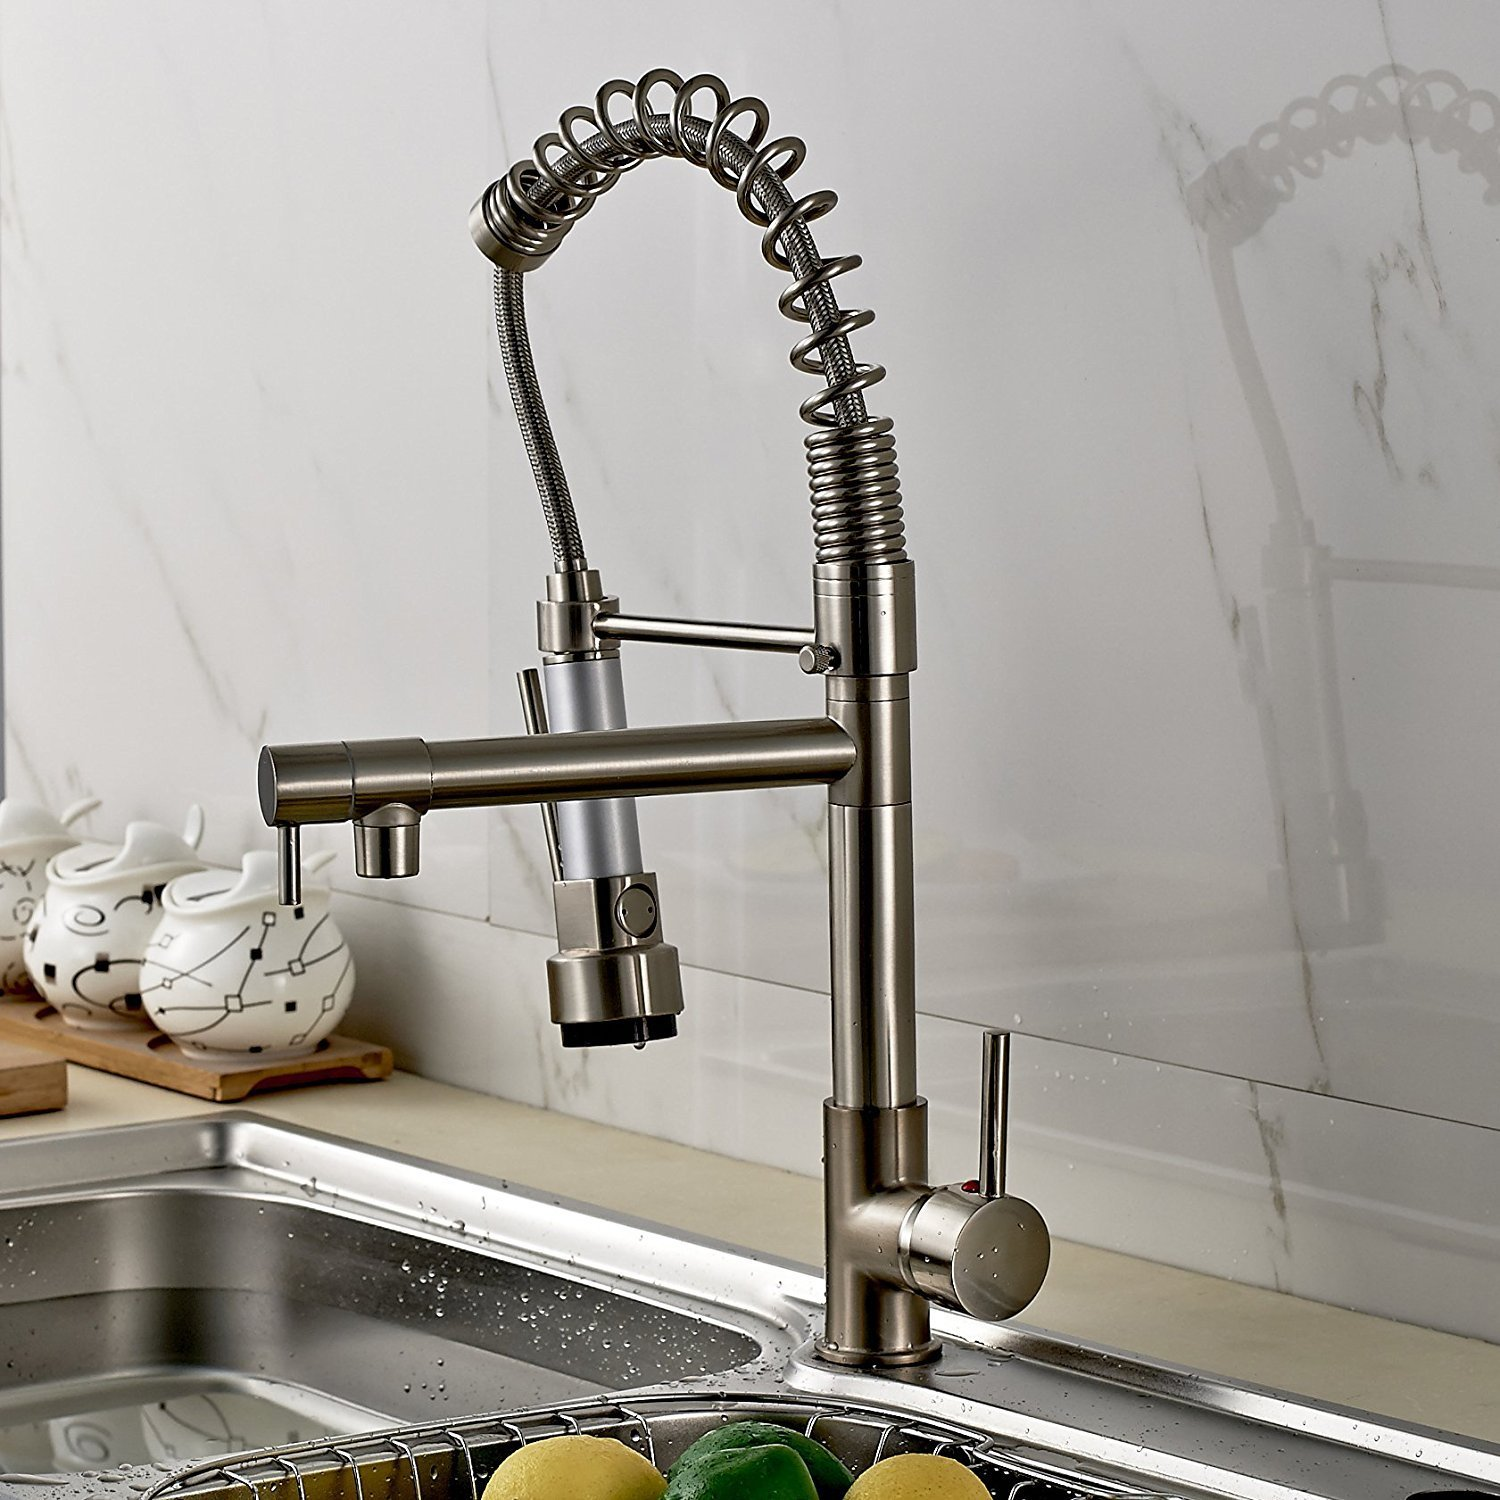 kitchen designs sink home faucets spray paint astonishing faucet